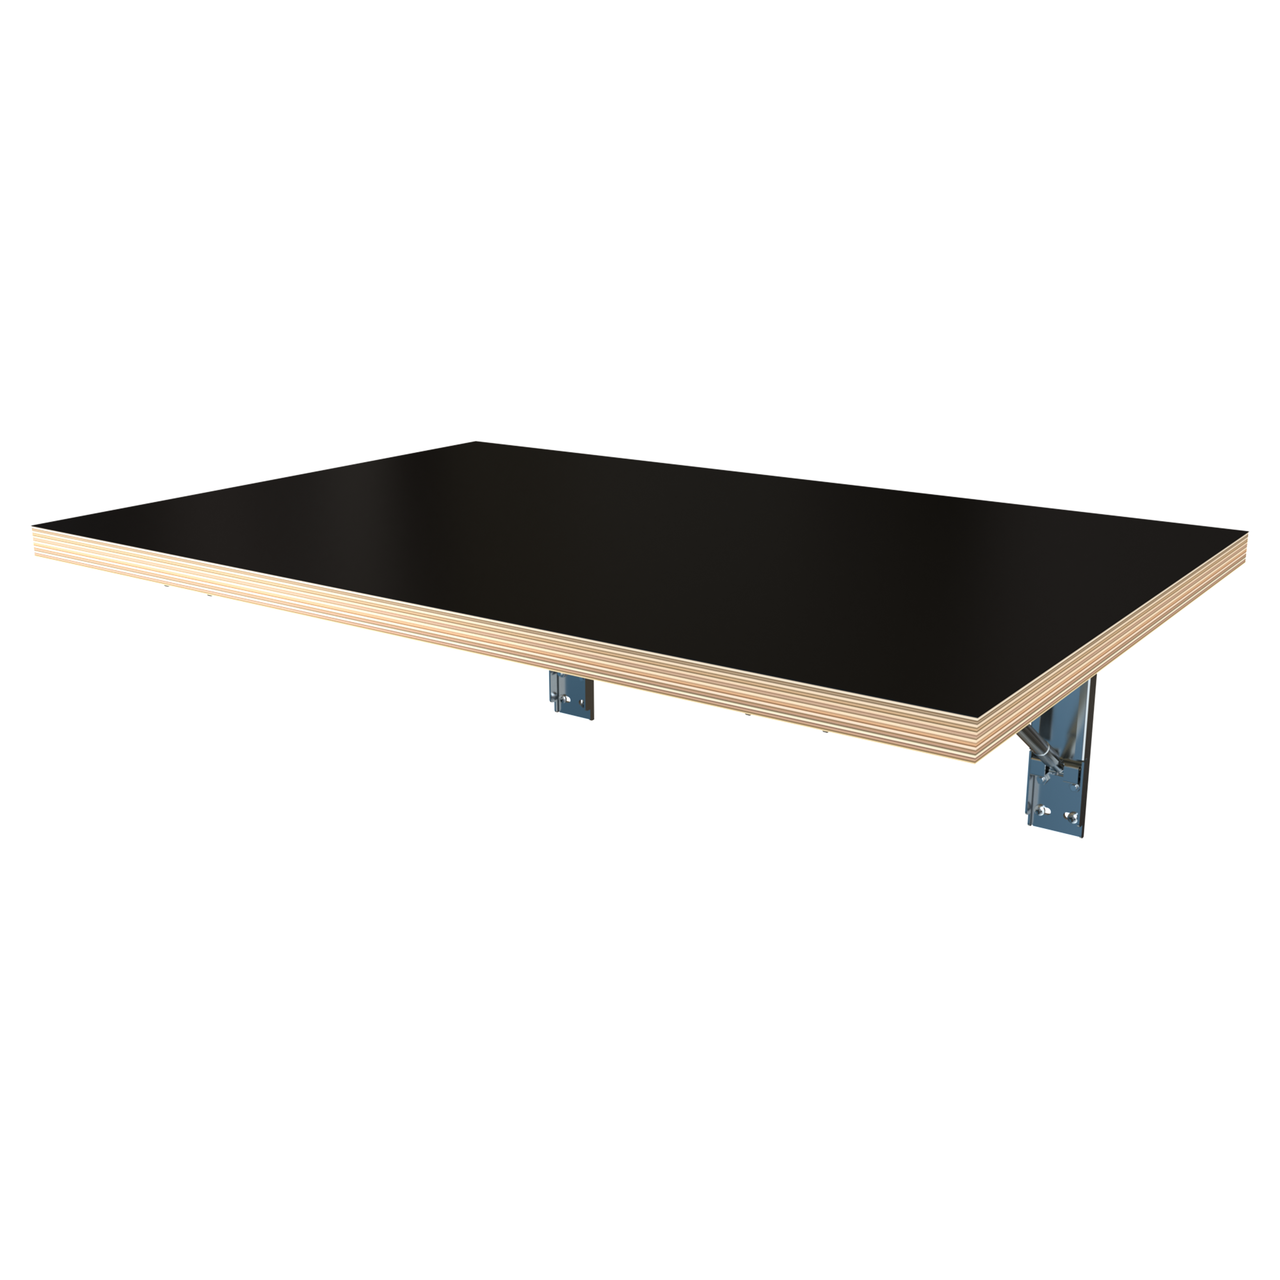 Wall Mounted Black Decor Ply Table, Folding Table, Wall Mounted Table, Wall